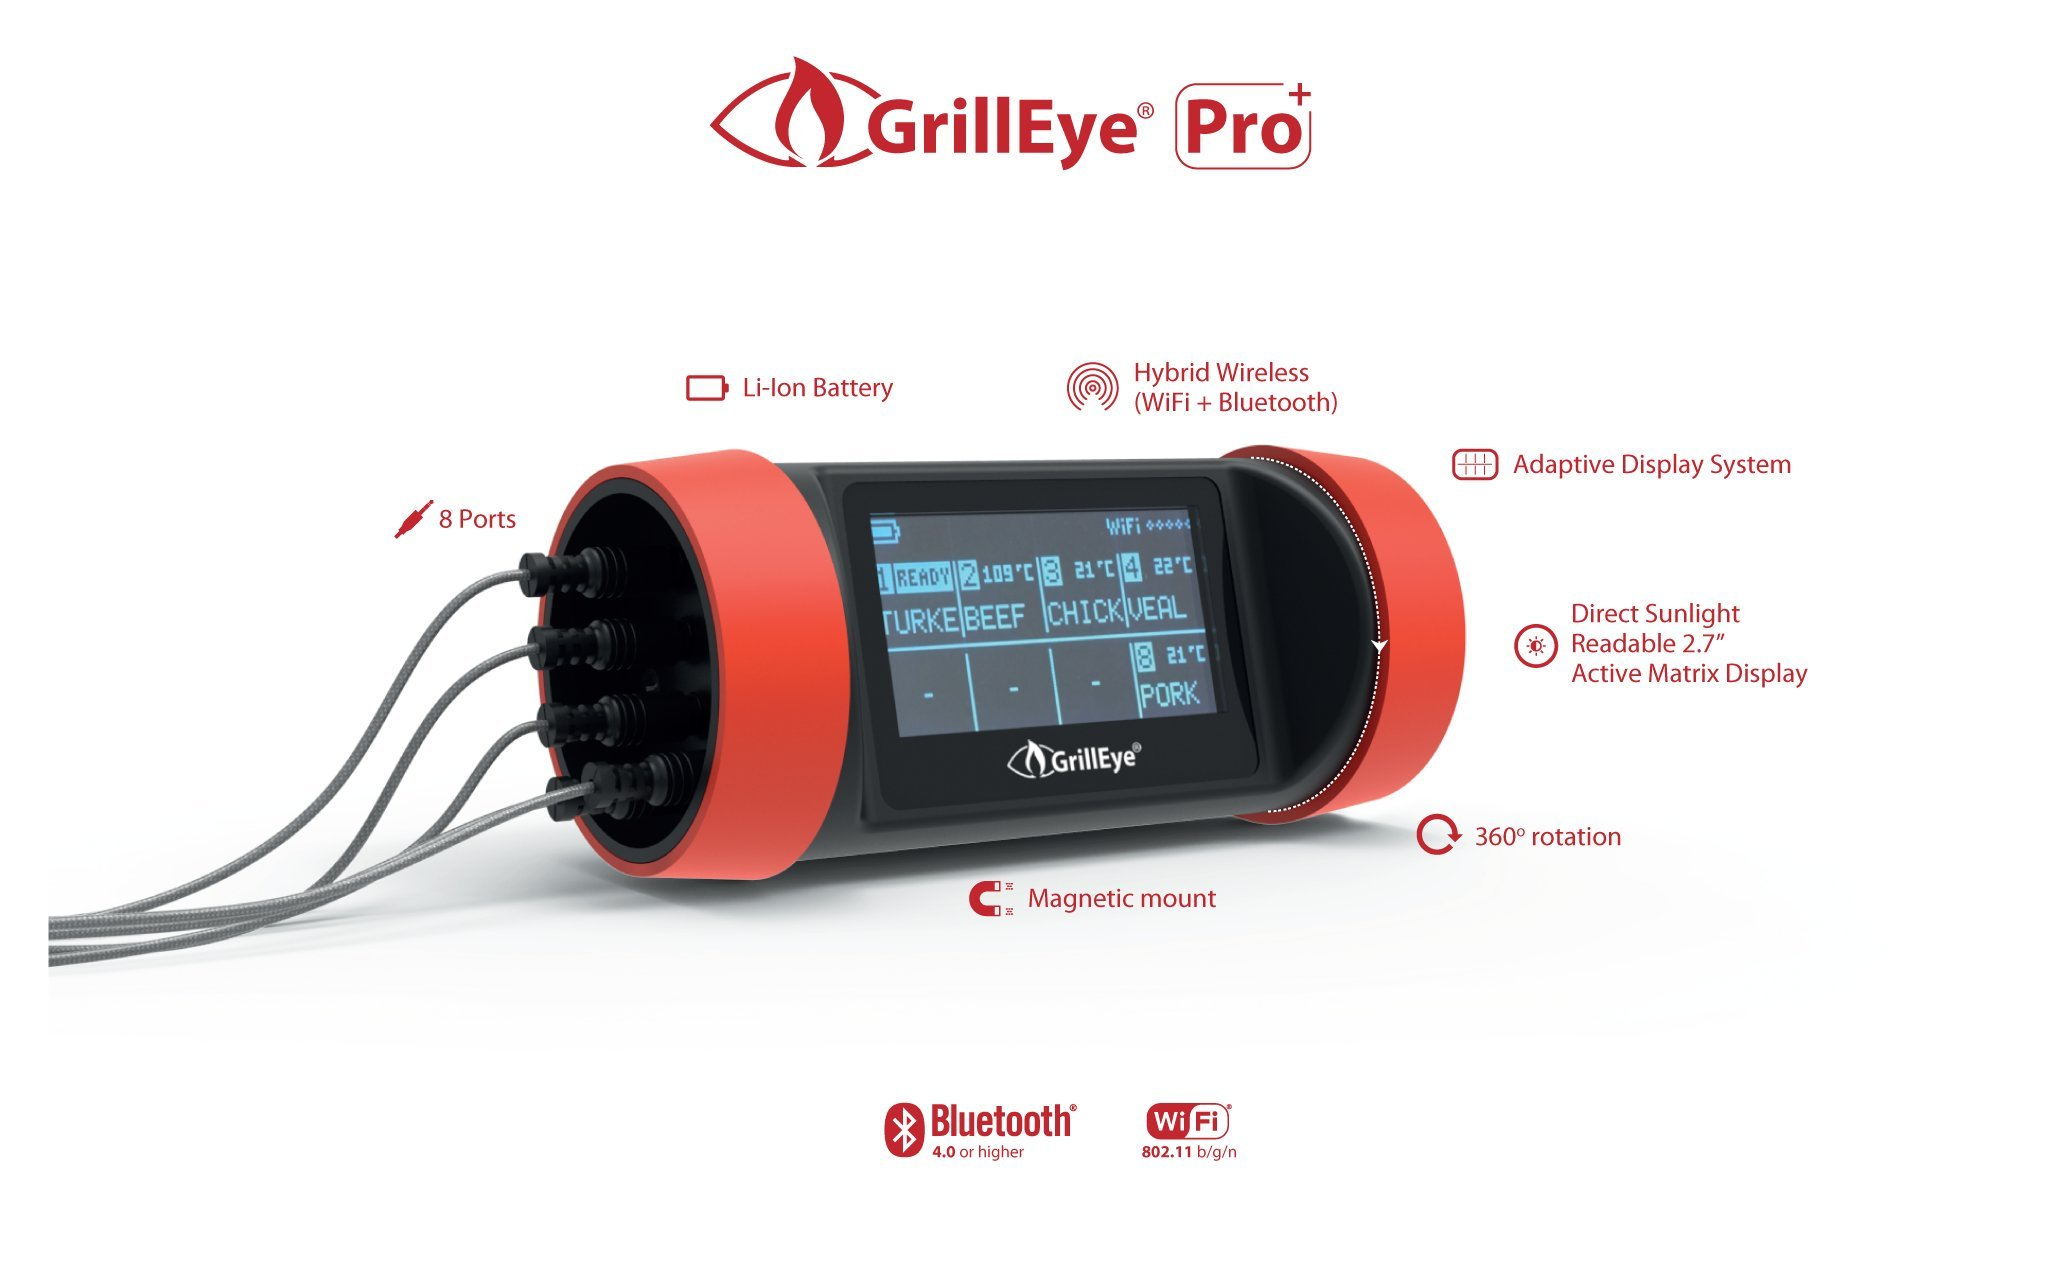 GrillEye Pro Plus Grilling & Smoking Thermometer with Hybrid-Wireless Technology